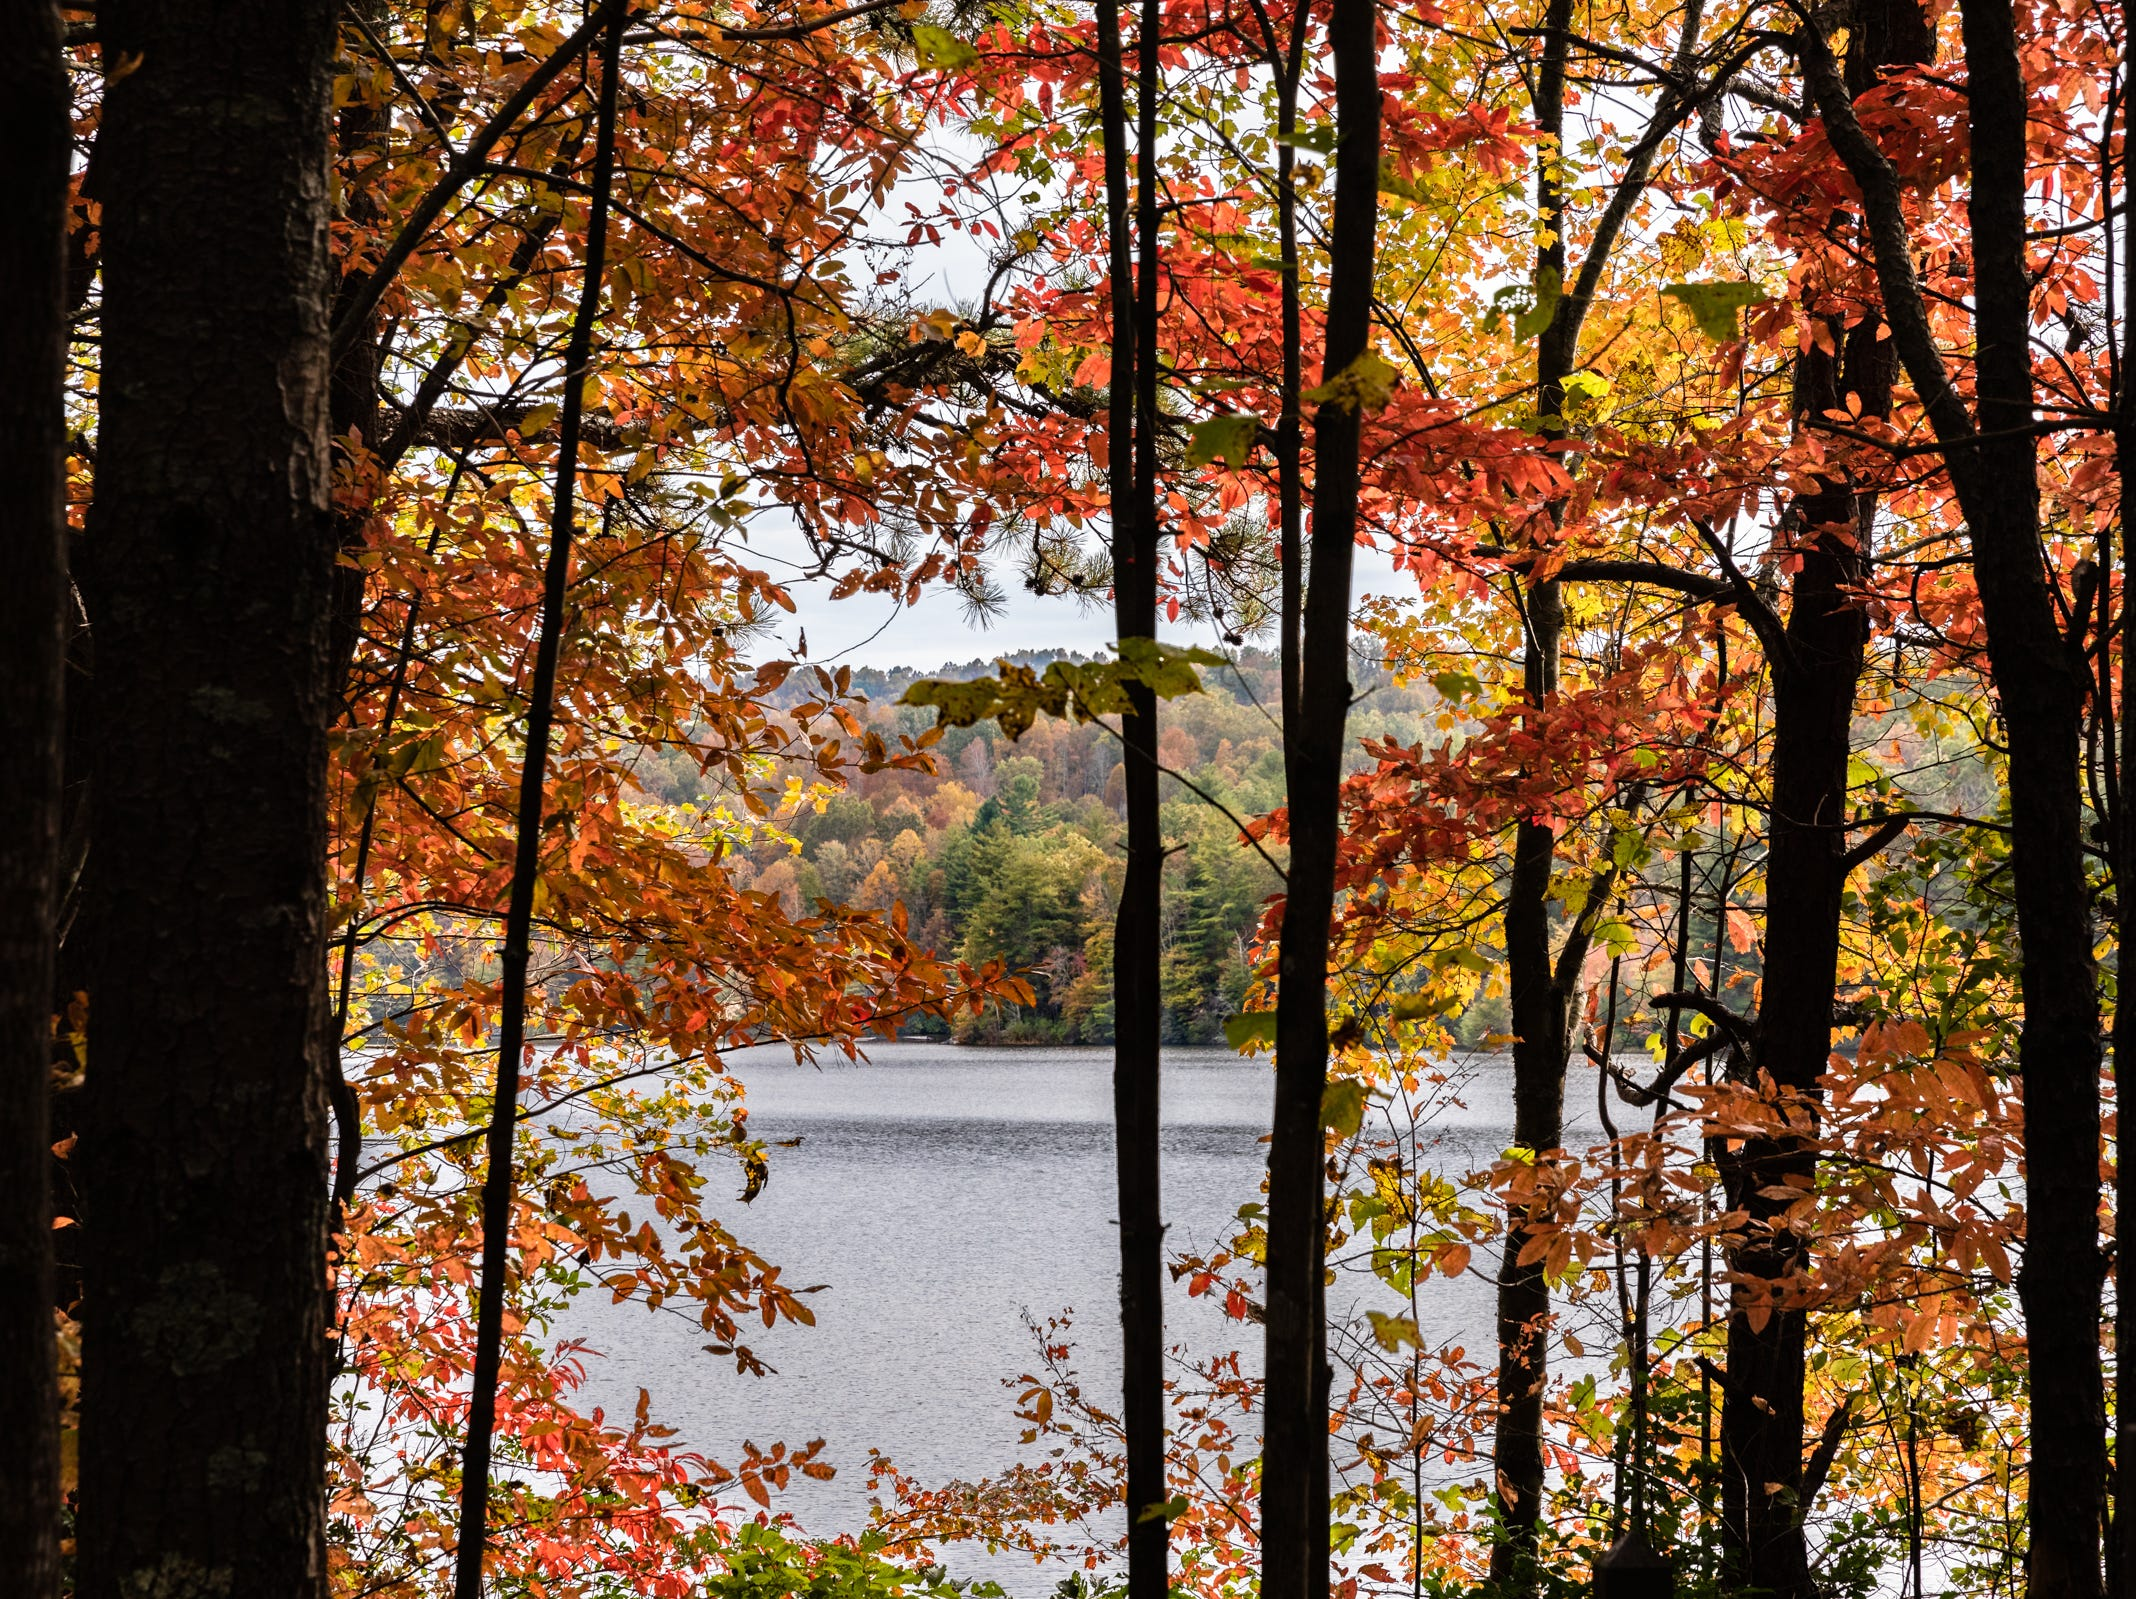 Some fall color can be seen at Lake Julia in DuPont State Recreational Forest, Oct. 25, 2018.